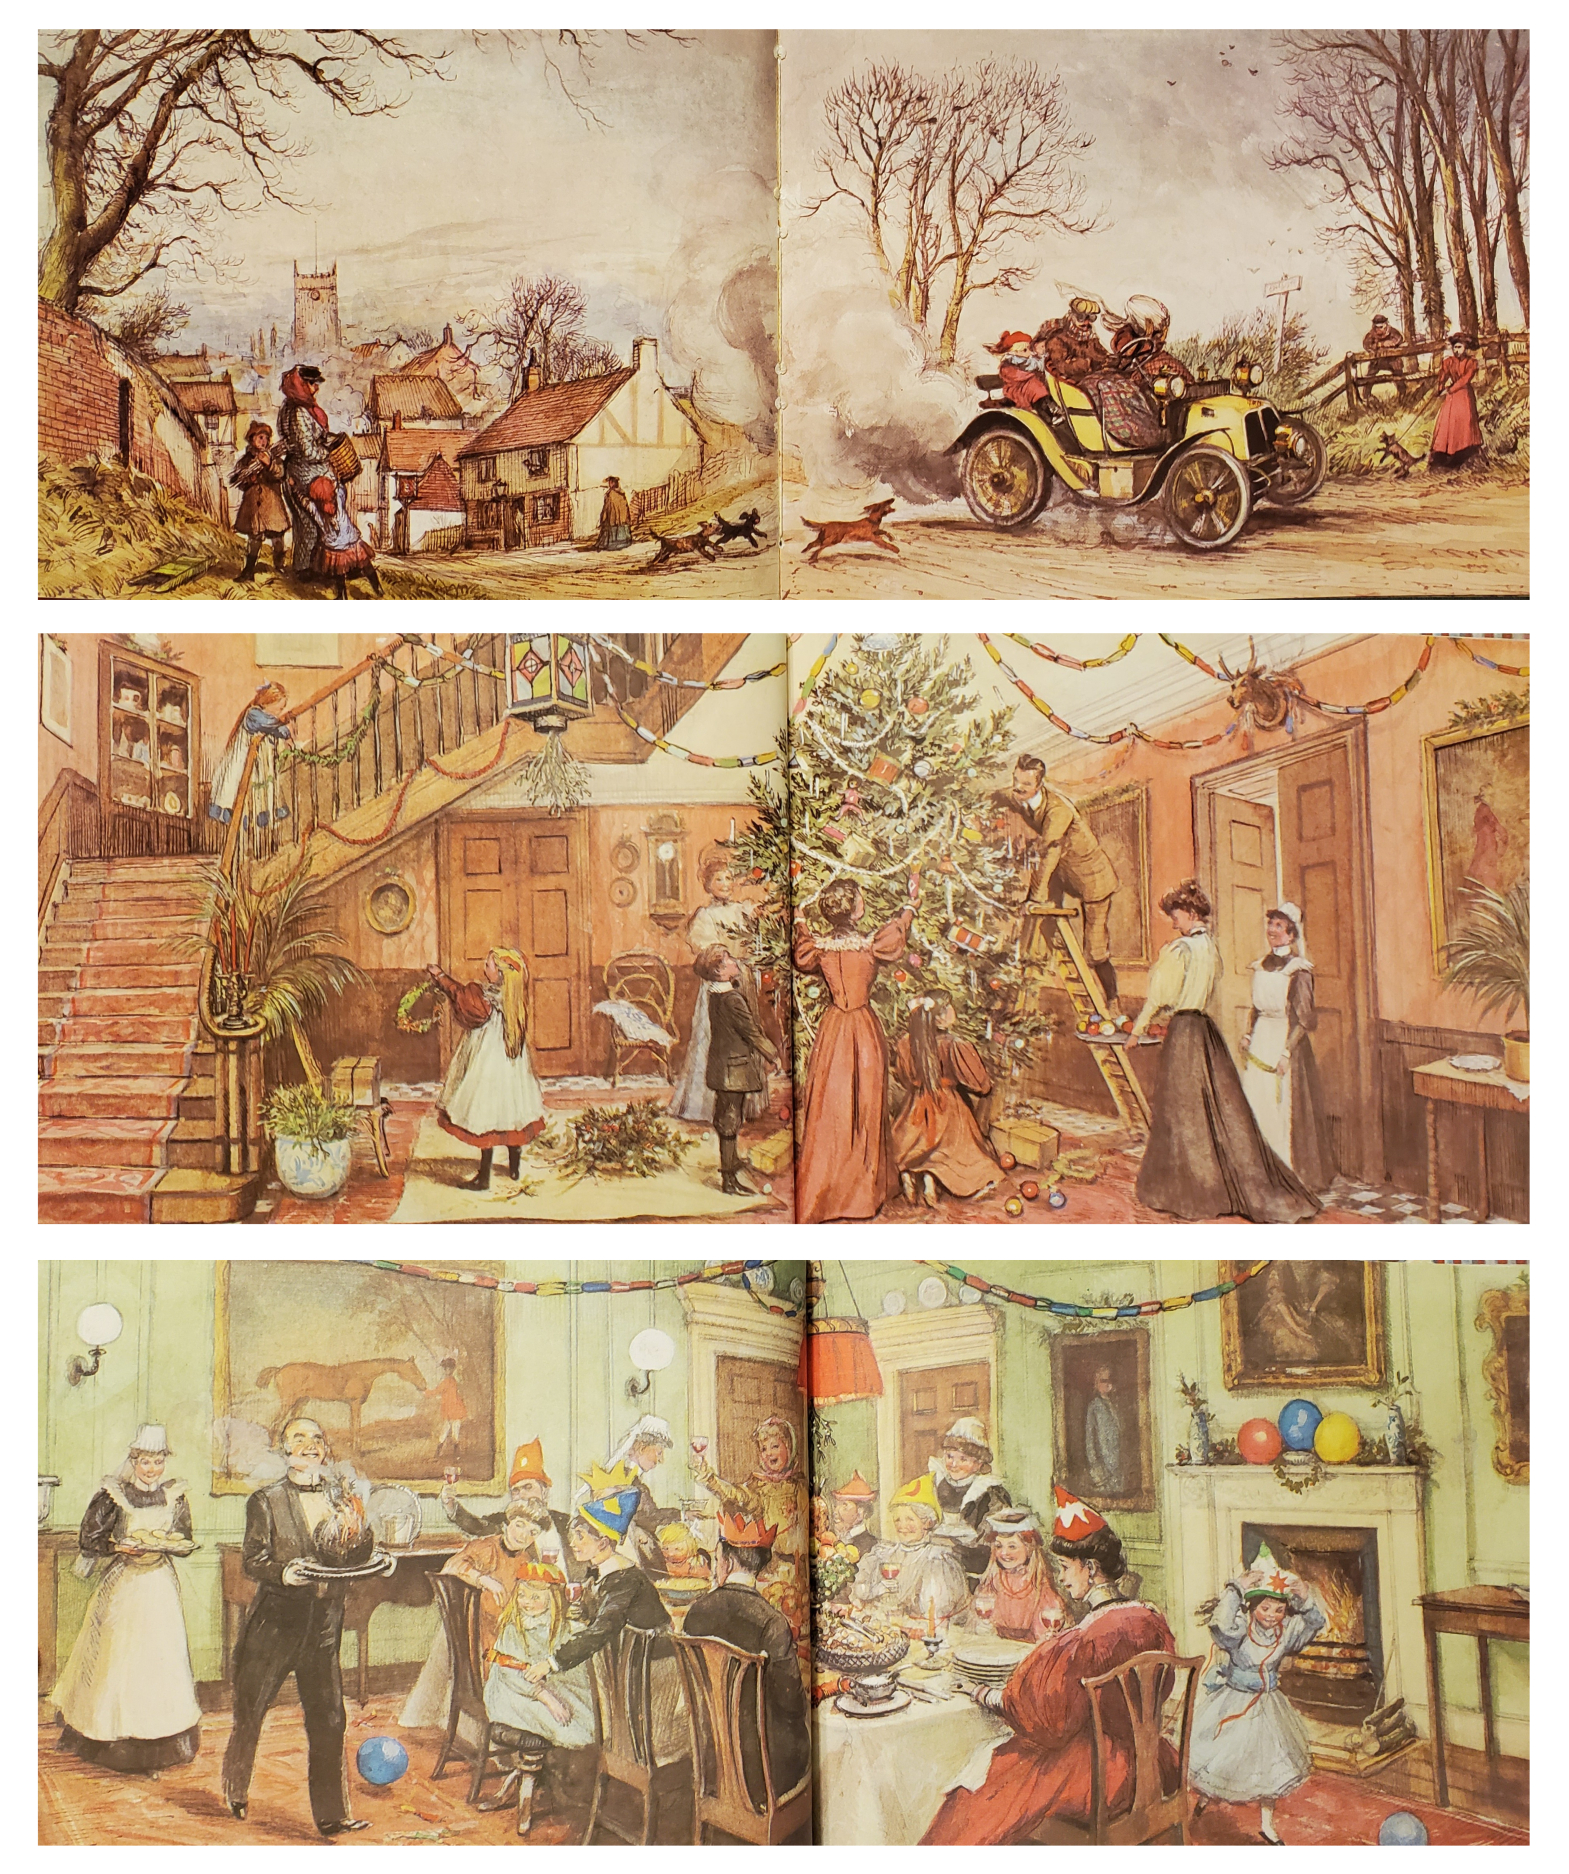 An Edwardian Christmas illustrations